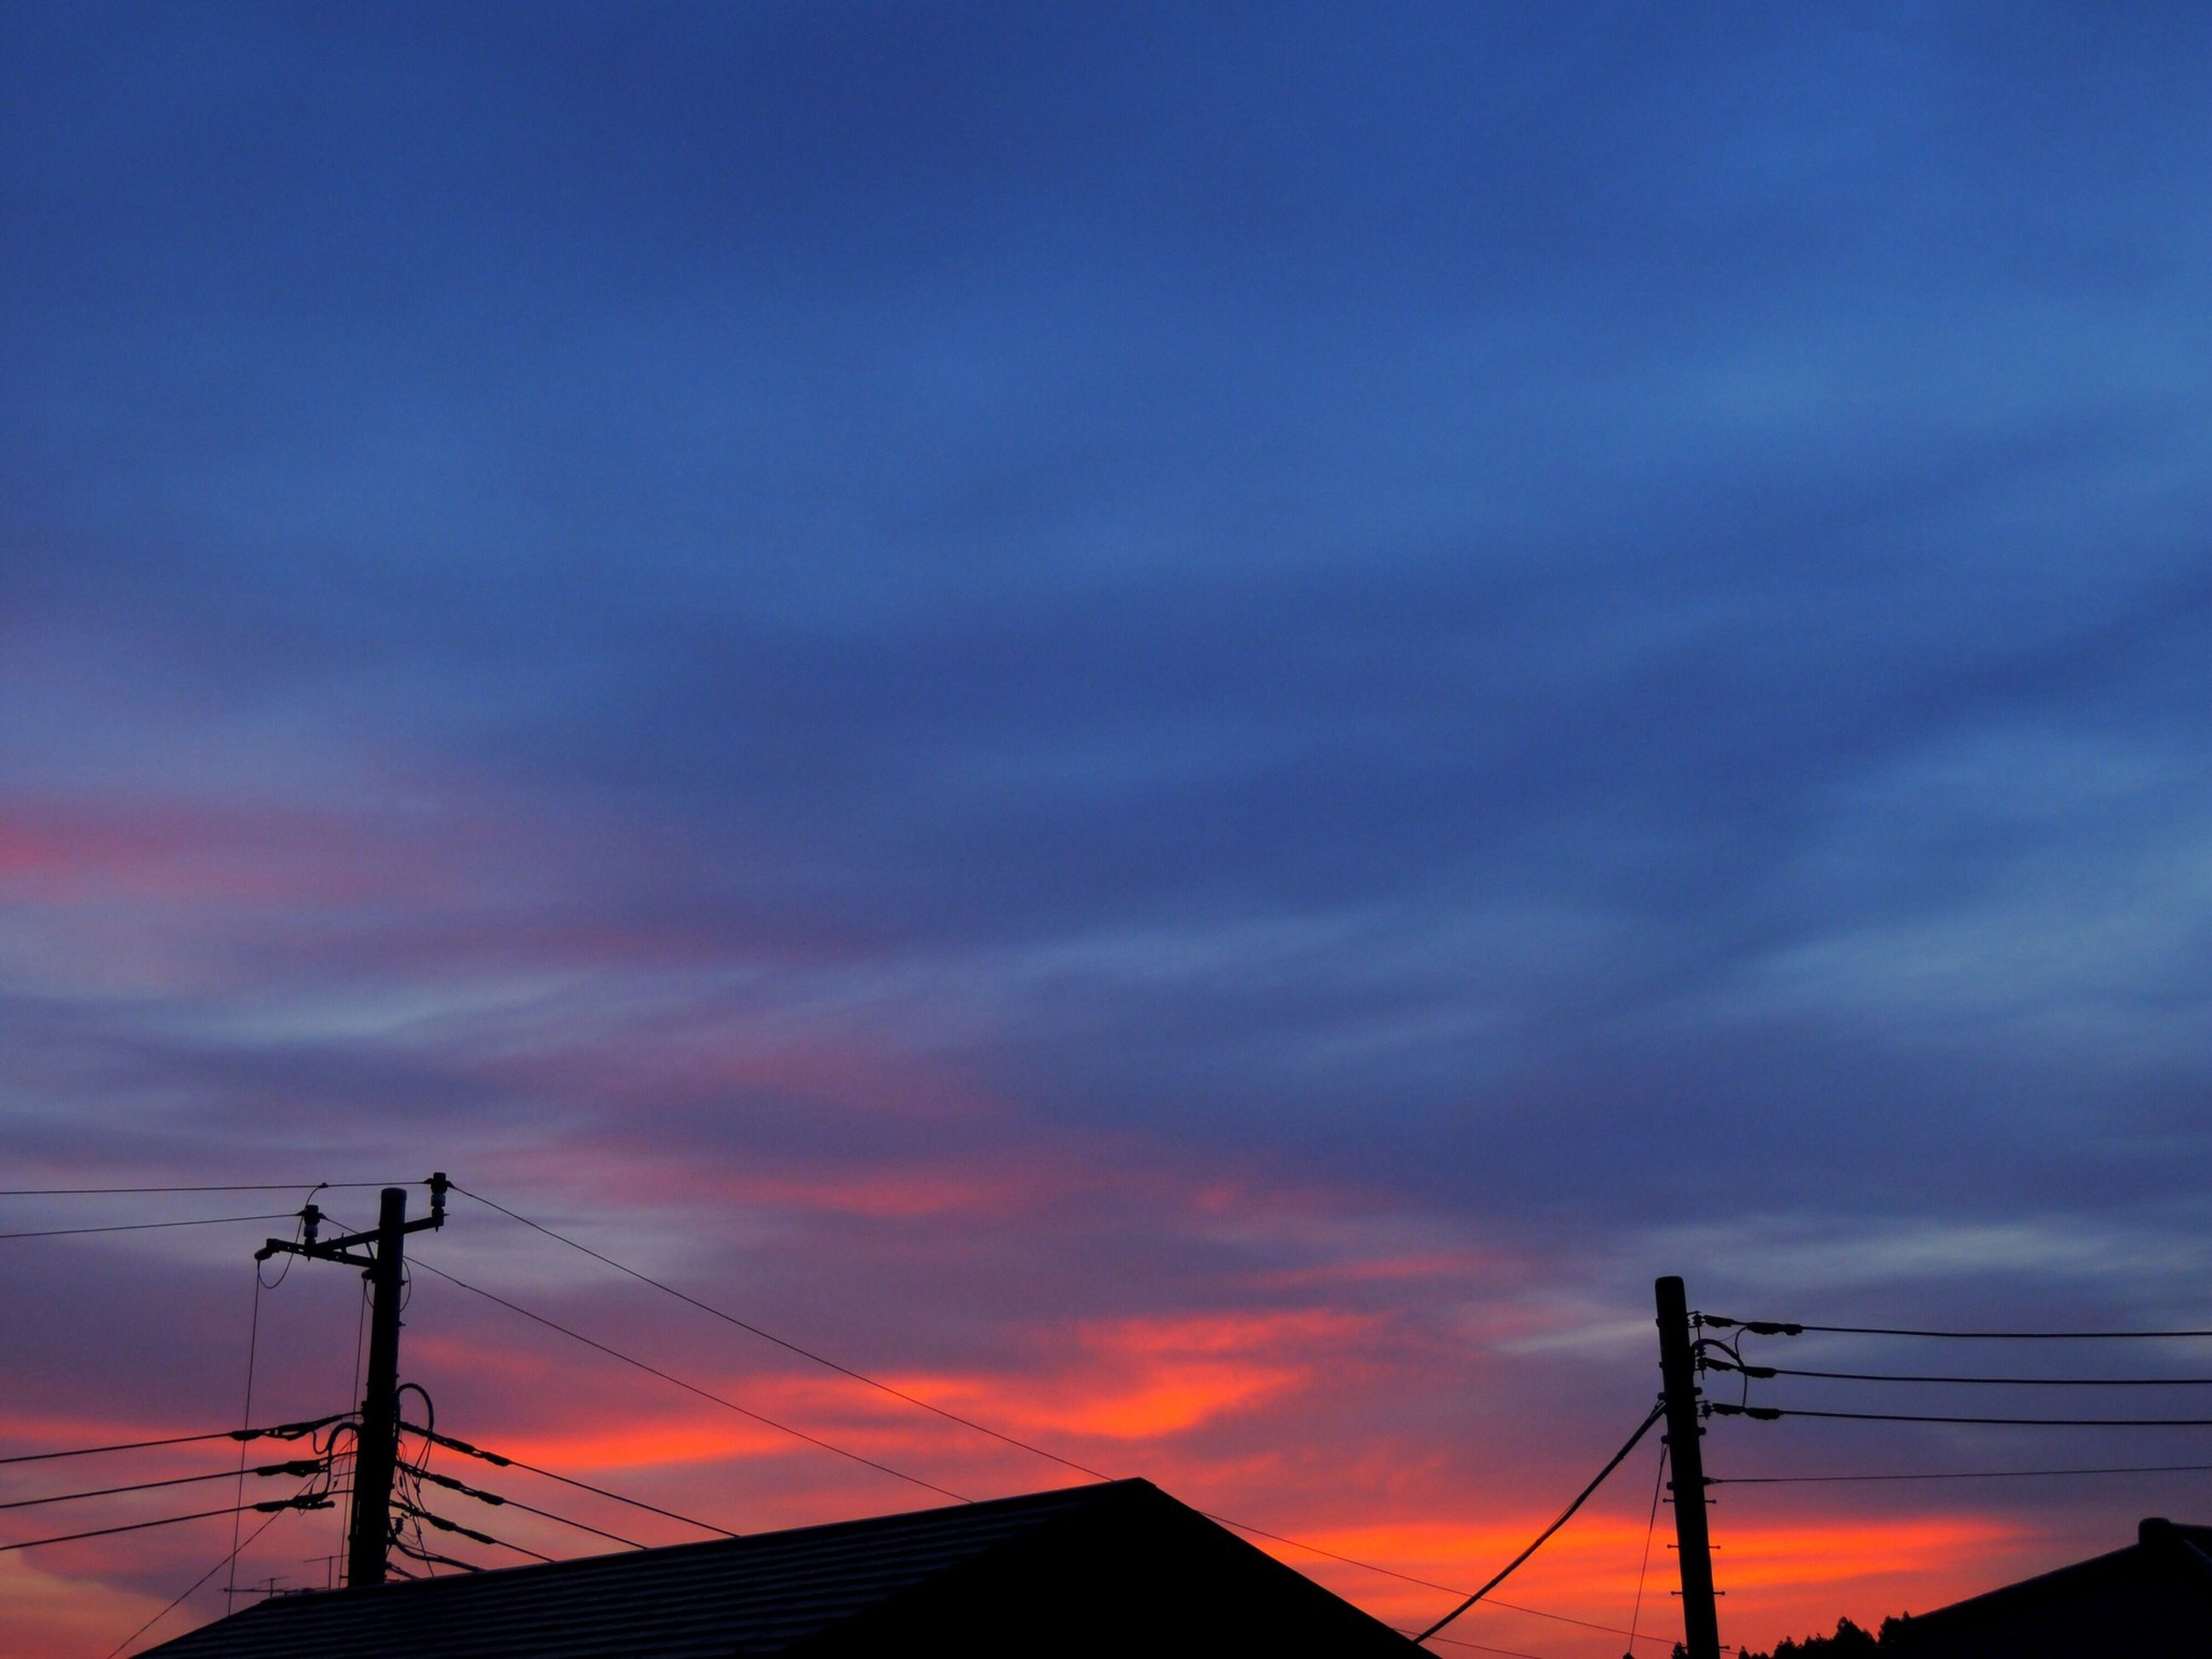 sunset, low angle view, silhouette, electricity pylon, sky, power line, power supply, fuel and power generation, electricity, technology, connection, orange color, cloud - sky, cable, built structure, dusk, dramatic sky, cloud, cloudy, outdoors